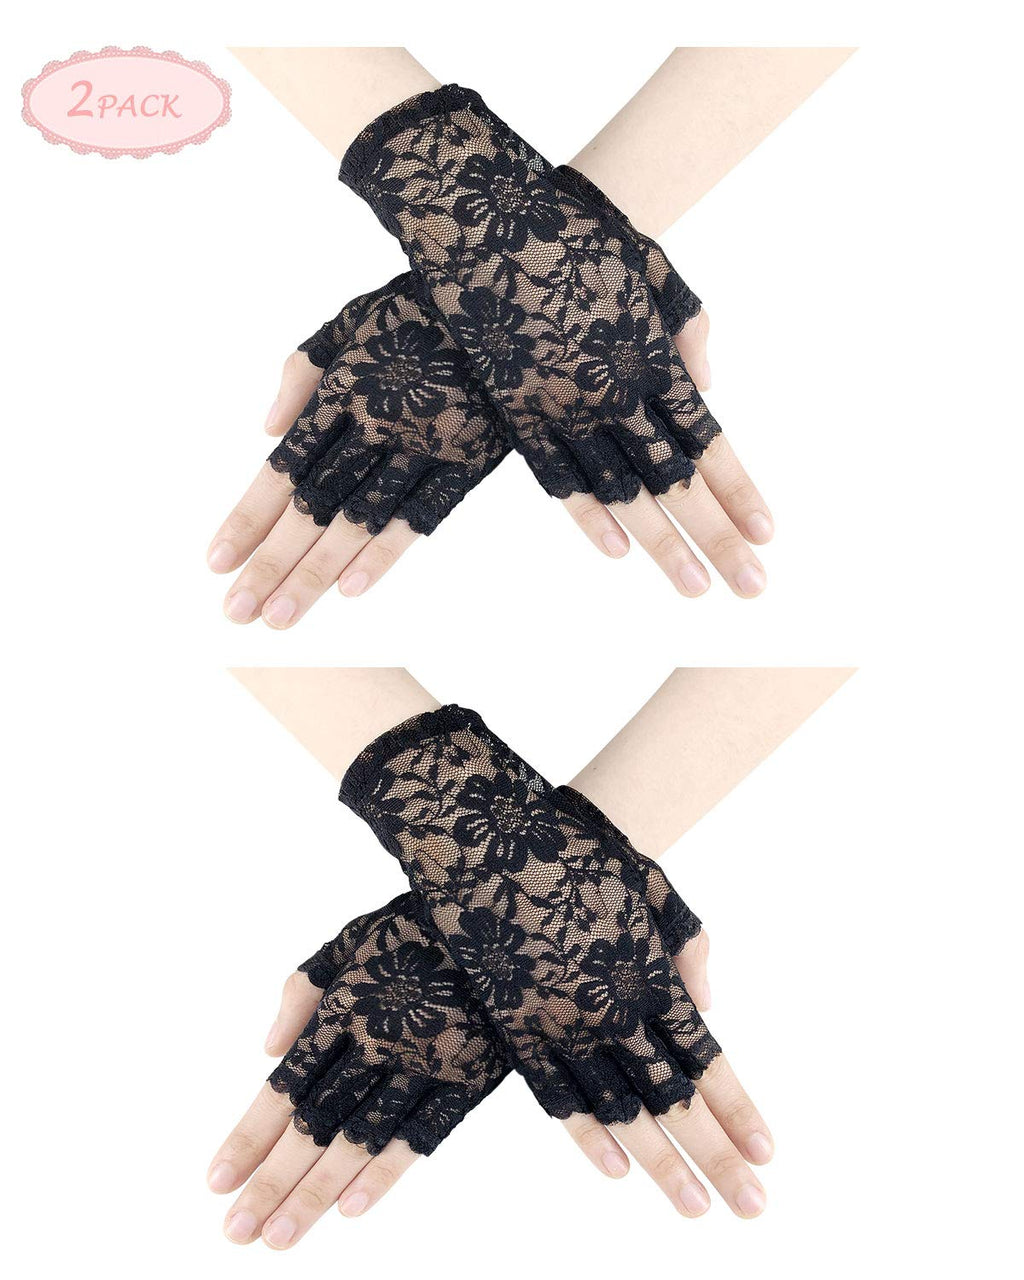 Women Lace Gloves - Wrist Length Gloves Fingerless Half Finger Bridal Gloves Accessories Dress Up